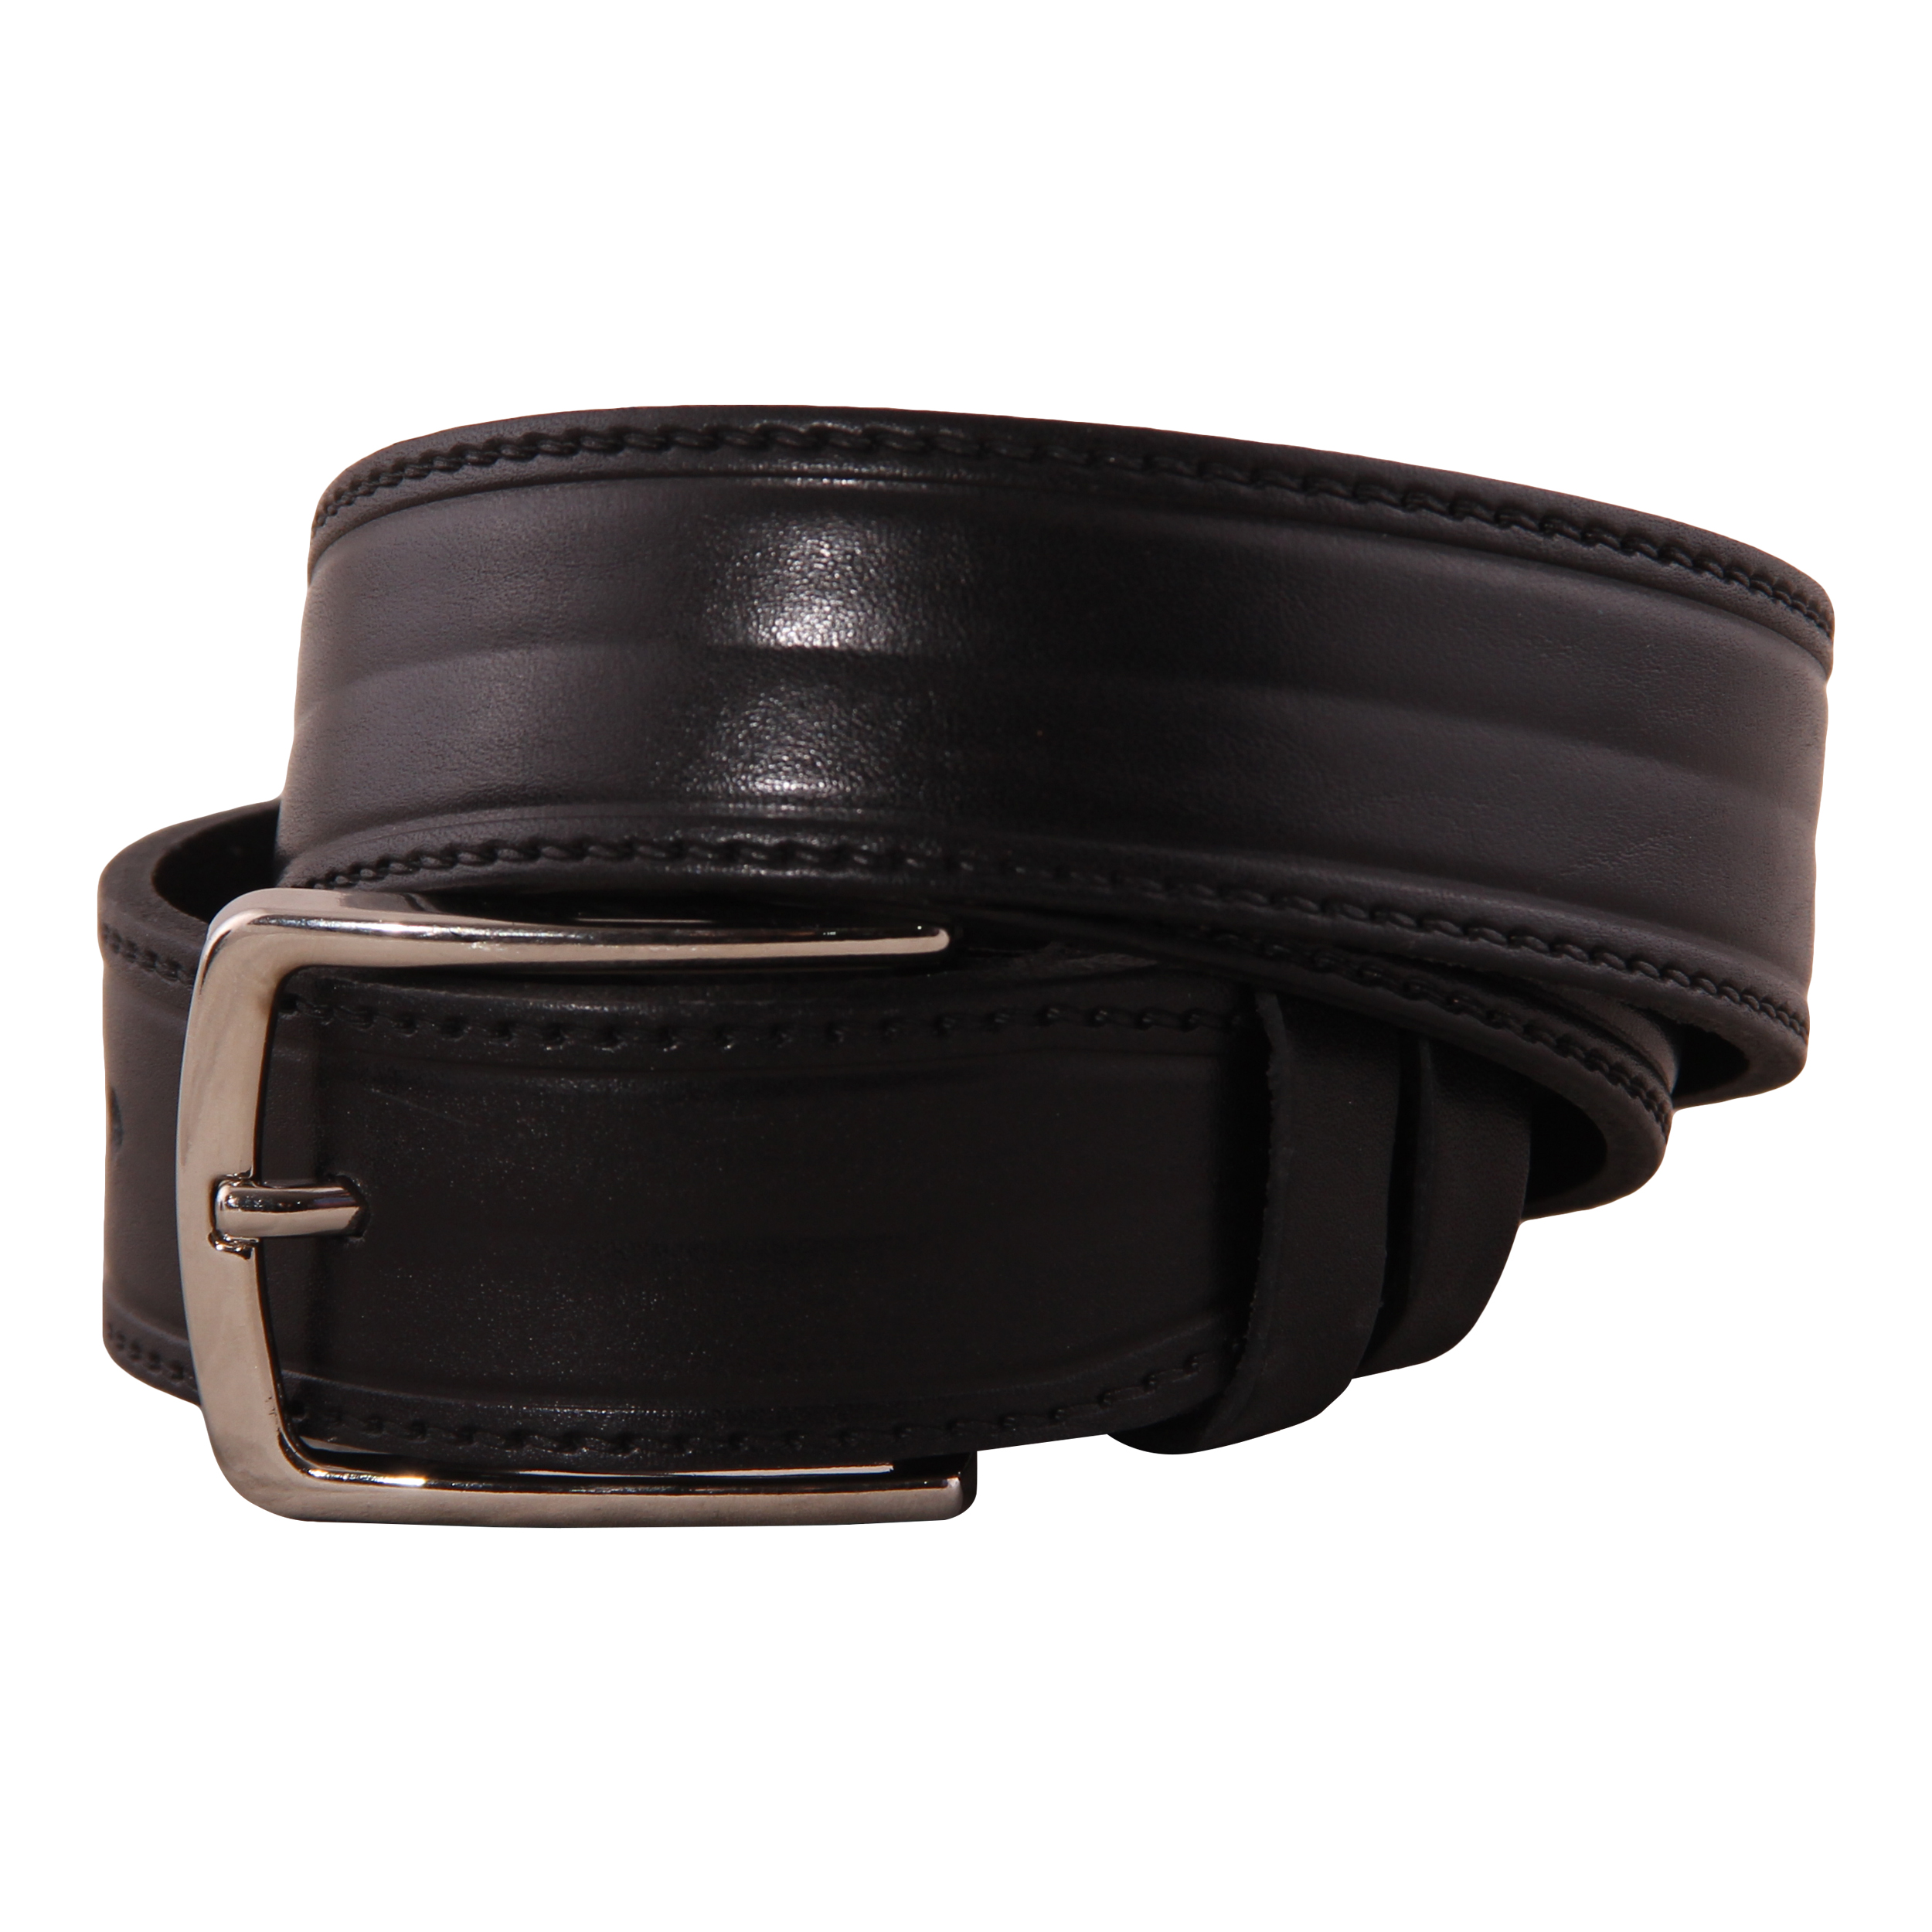 SHAHRECHARM Men's belt, z245105-1Model